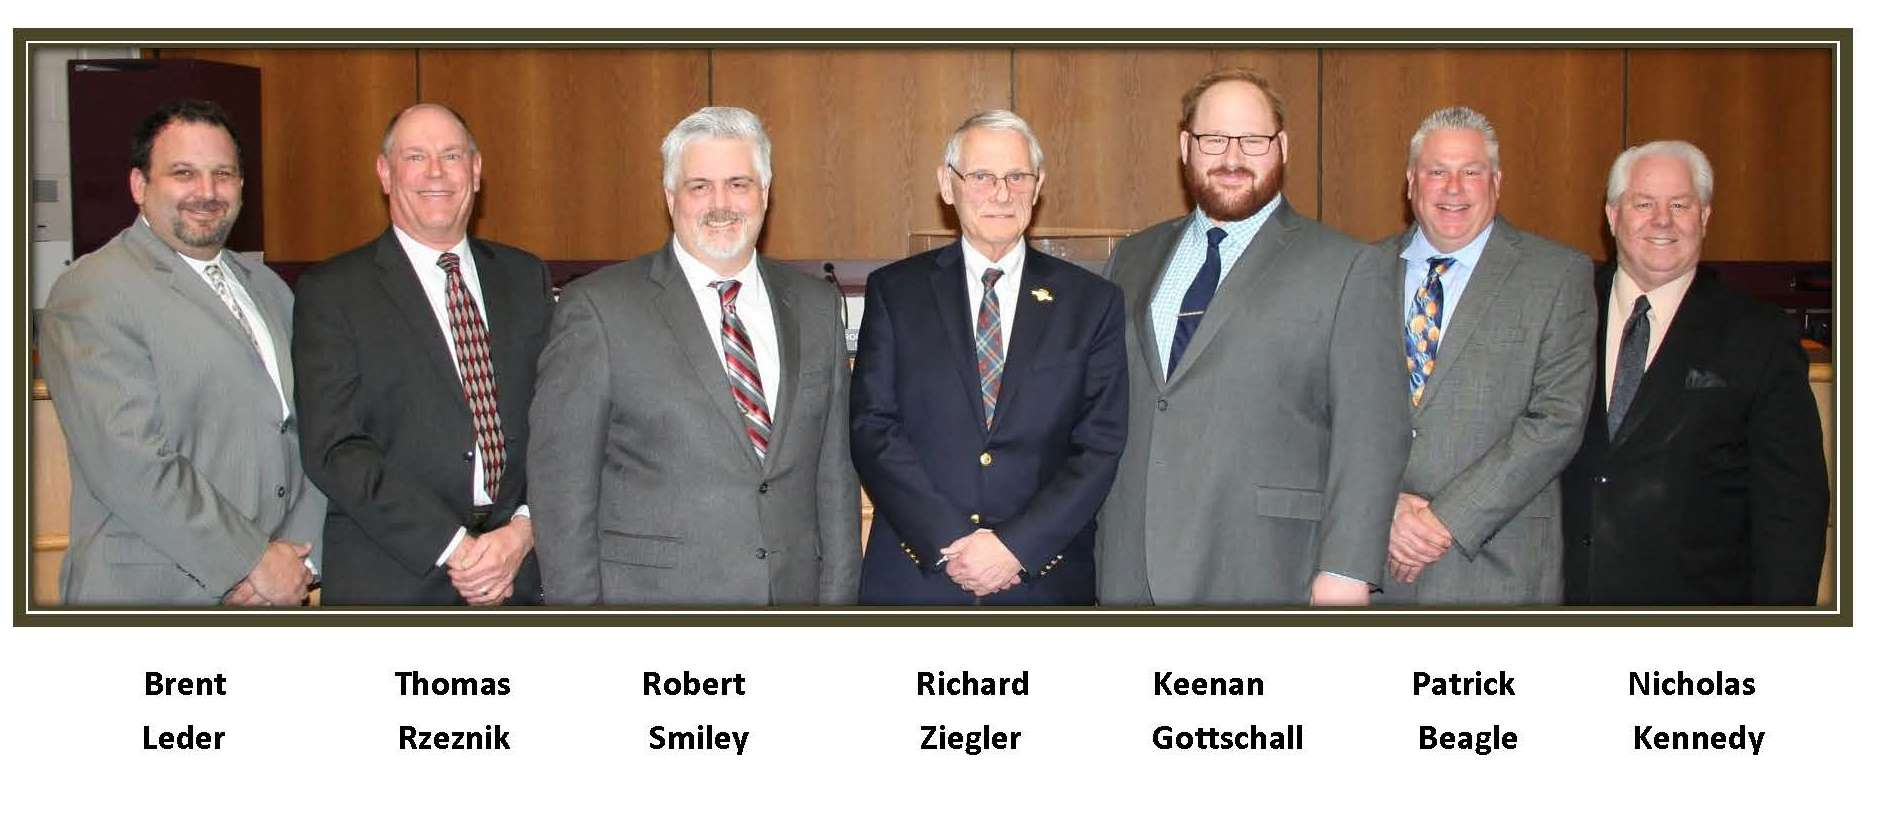 City Council Picture  -Feb 2018